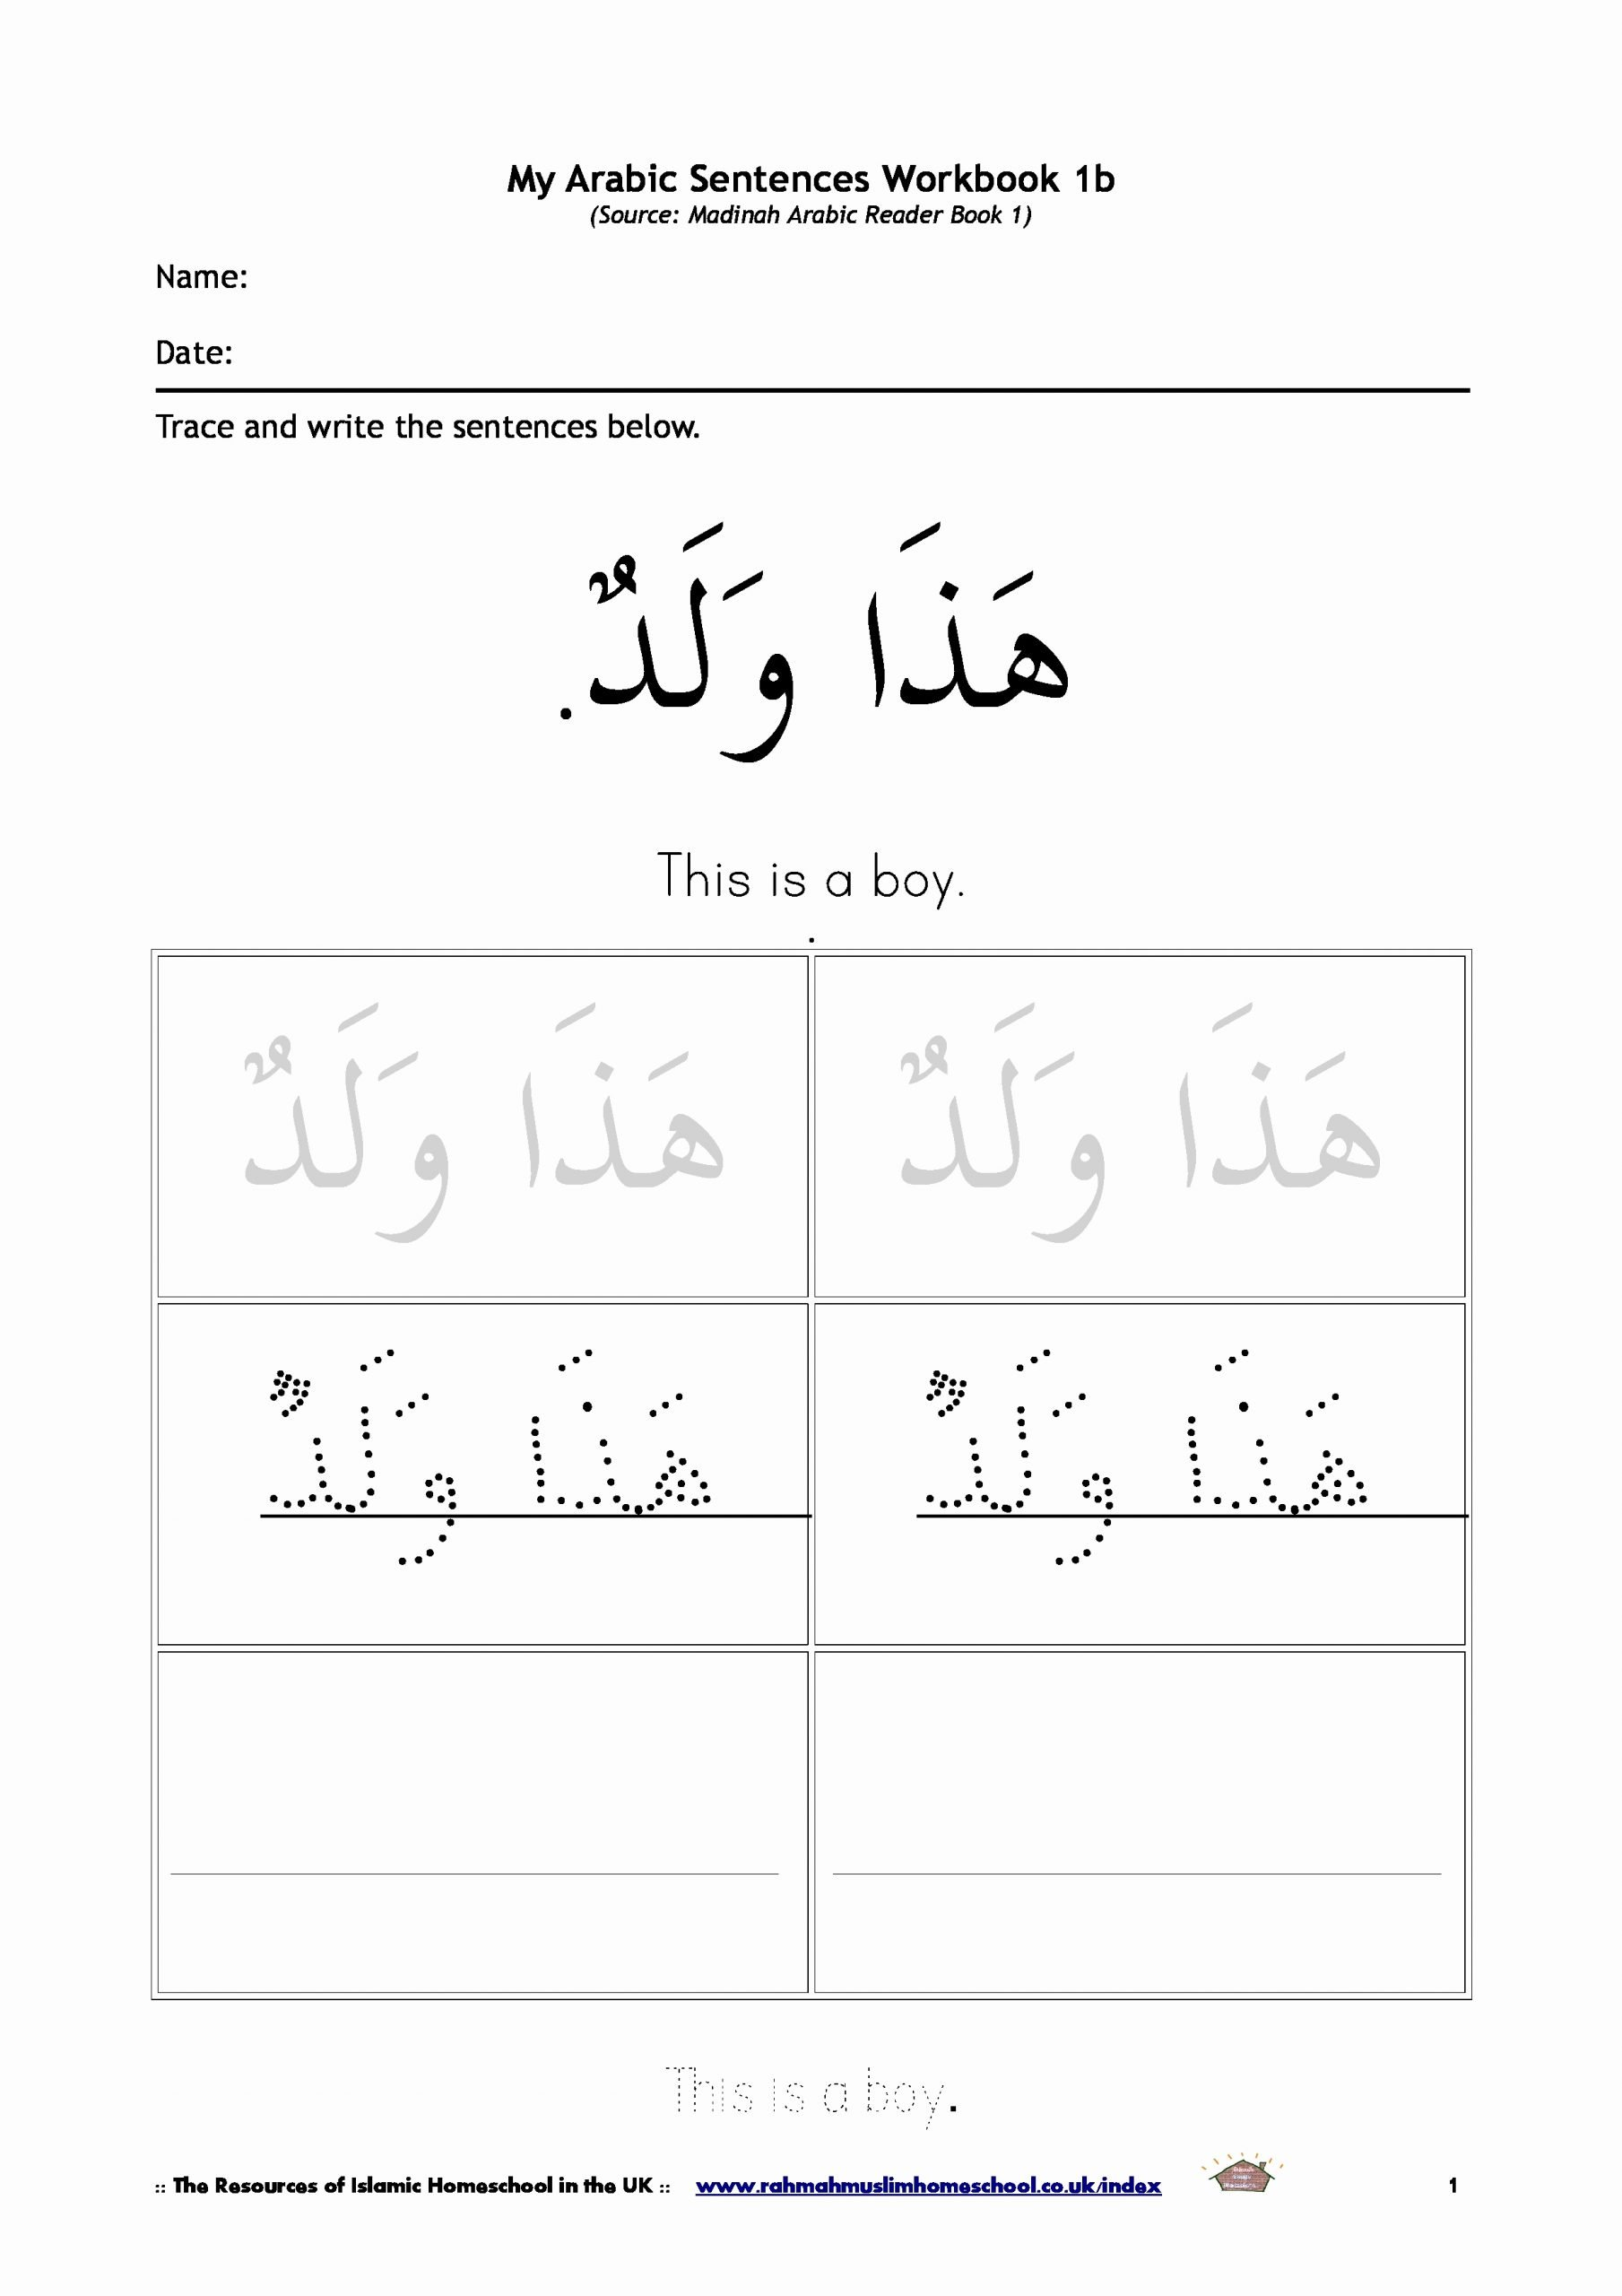 Arabic Worksheets for Preschoolers Best Of Basic Vocabulary and Short Sentences In Arabic for Kids 1b